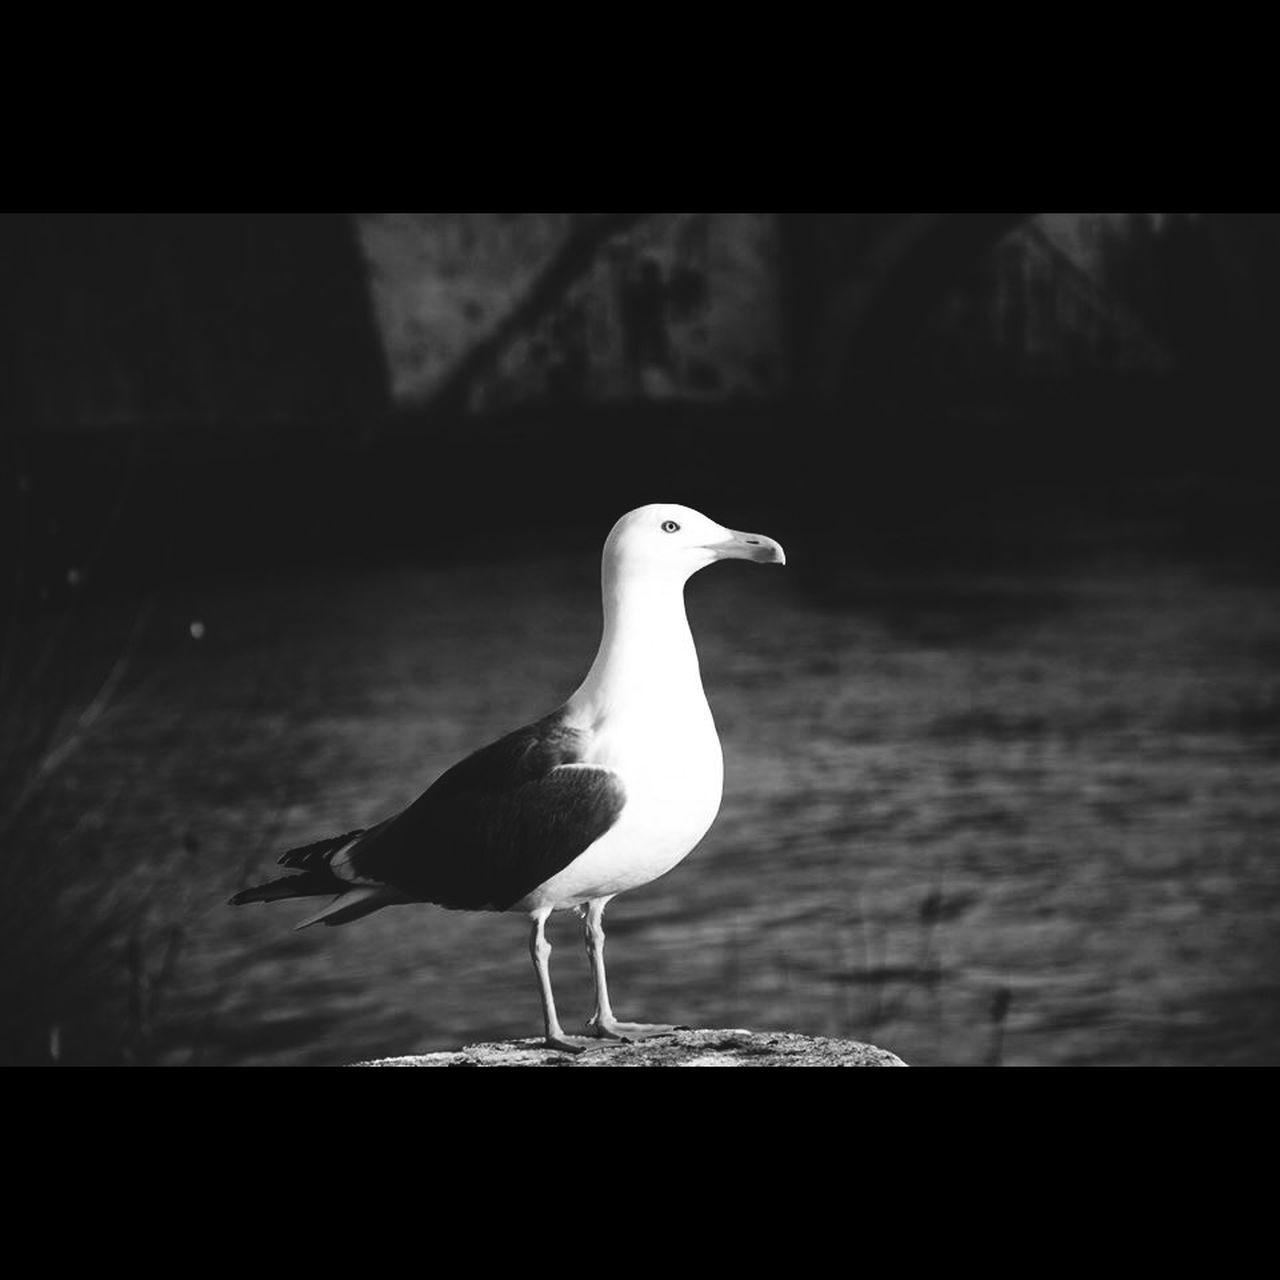 bird, one animal, animal themes, animals in the wild, perching, no people, focus on foreground, day, seagull, beak, water, outdoors, nature, close-up